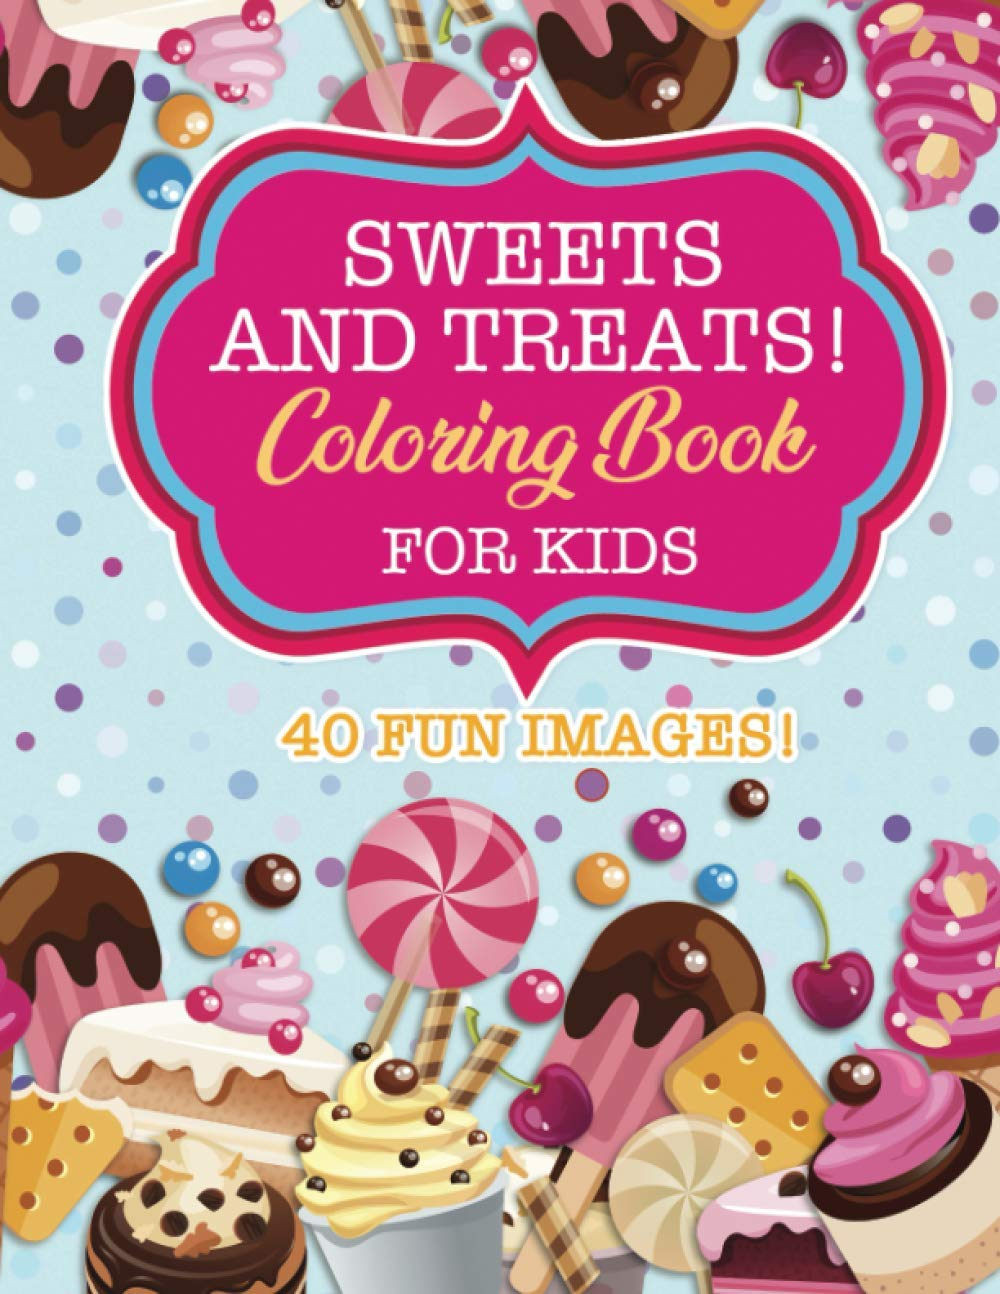 Sweets & Treats Coloring Book For Kids: 40 Fun Images: Cupcakes, Candies, Cakes, Fruits & More!